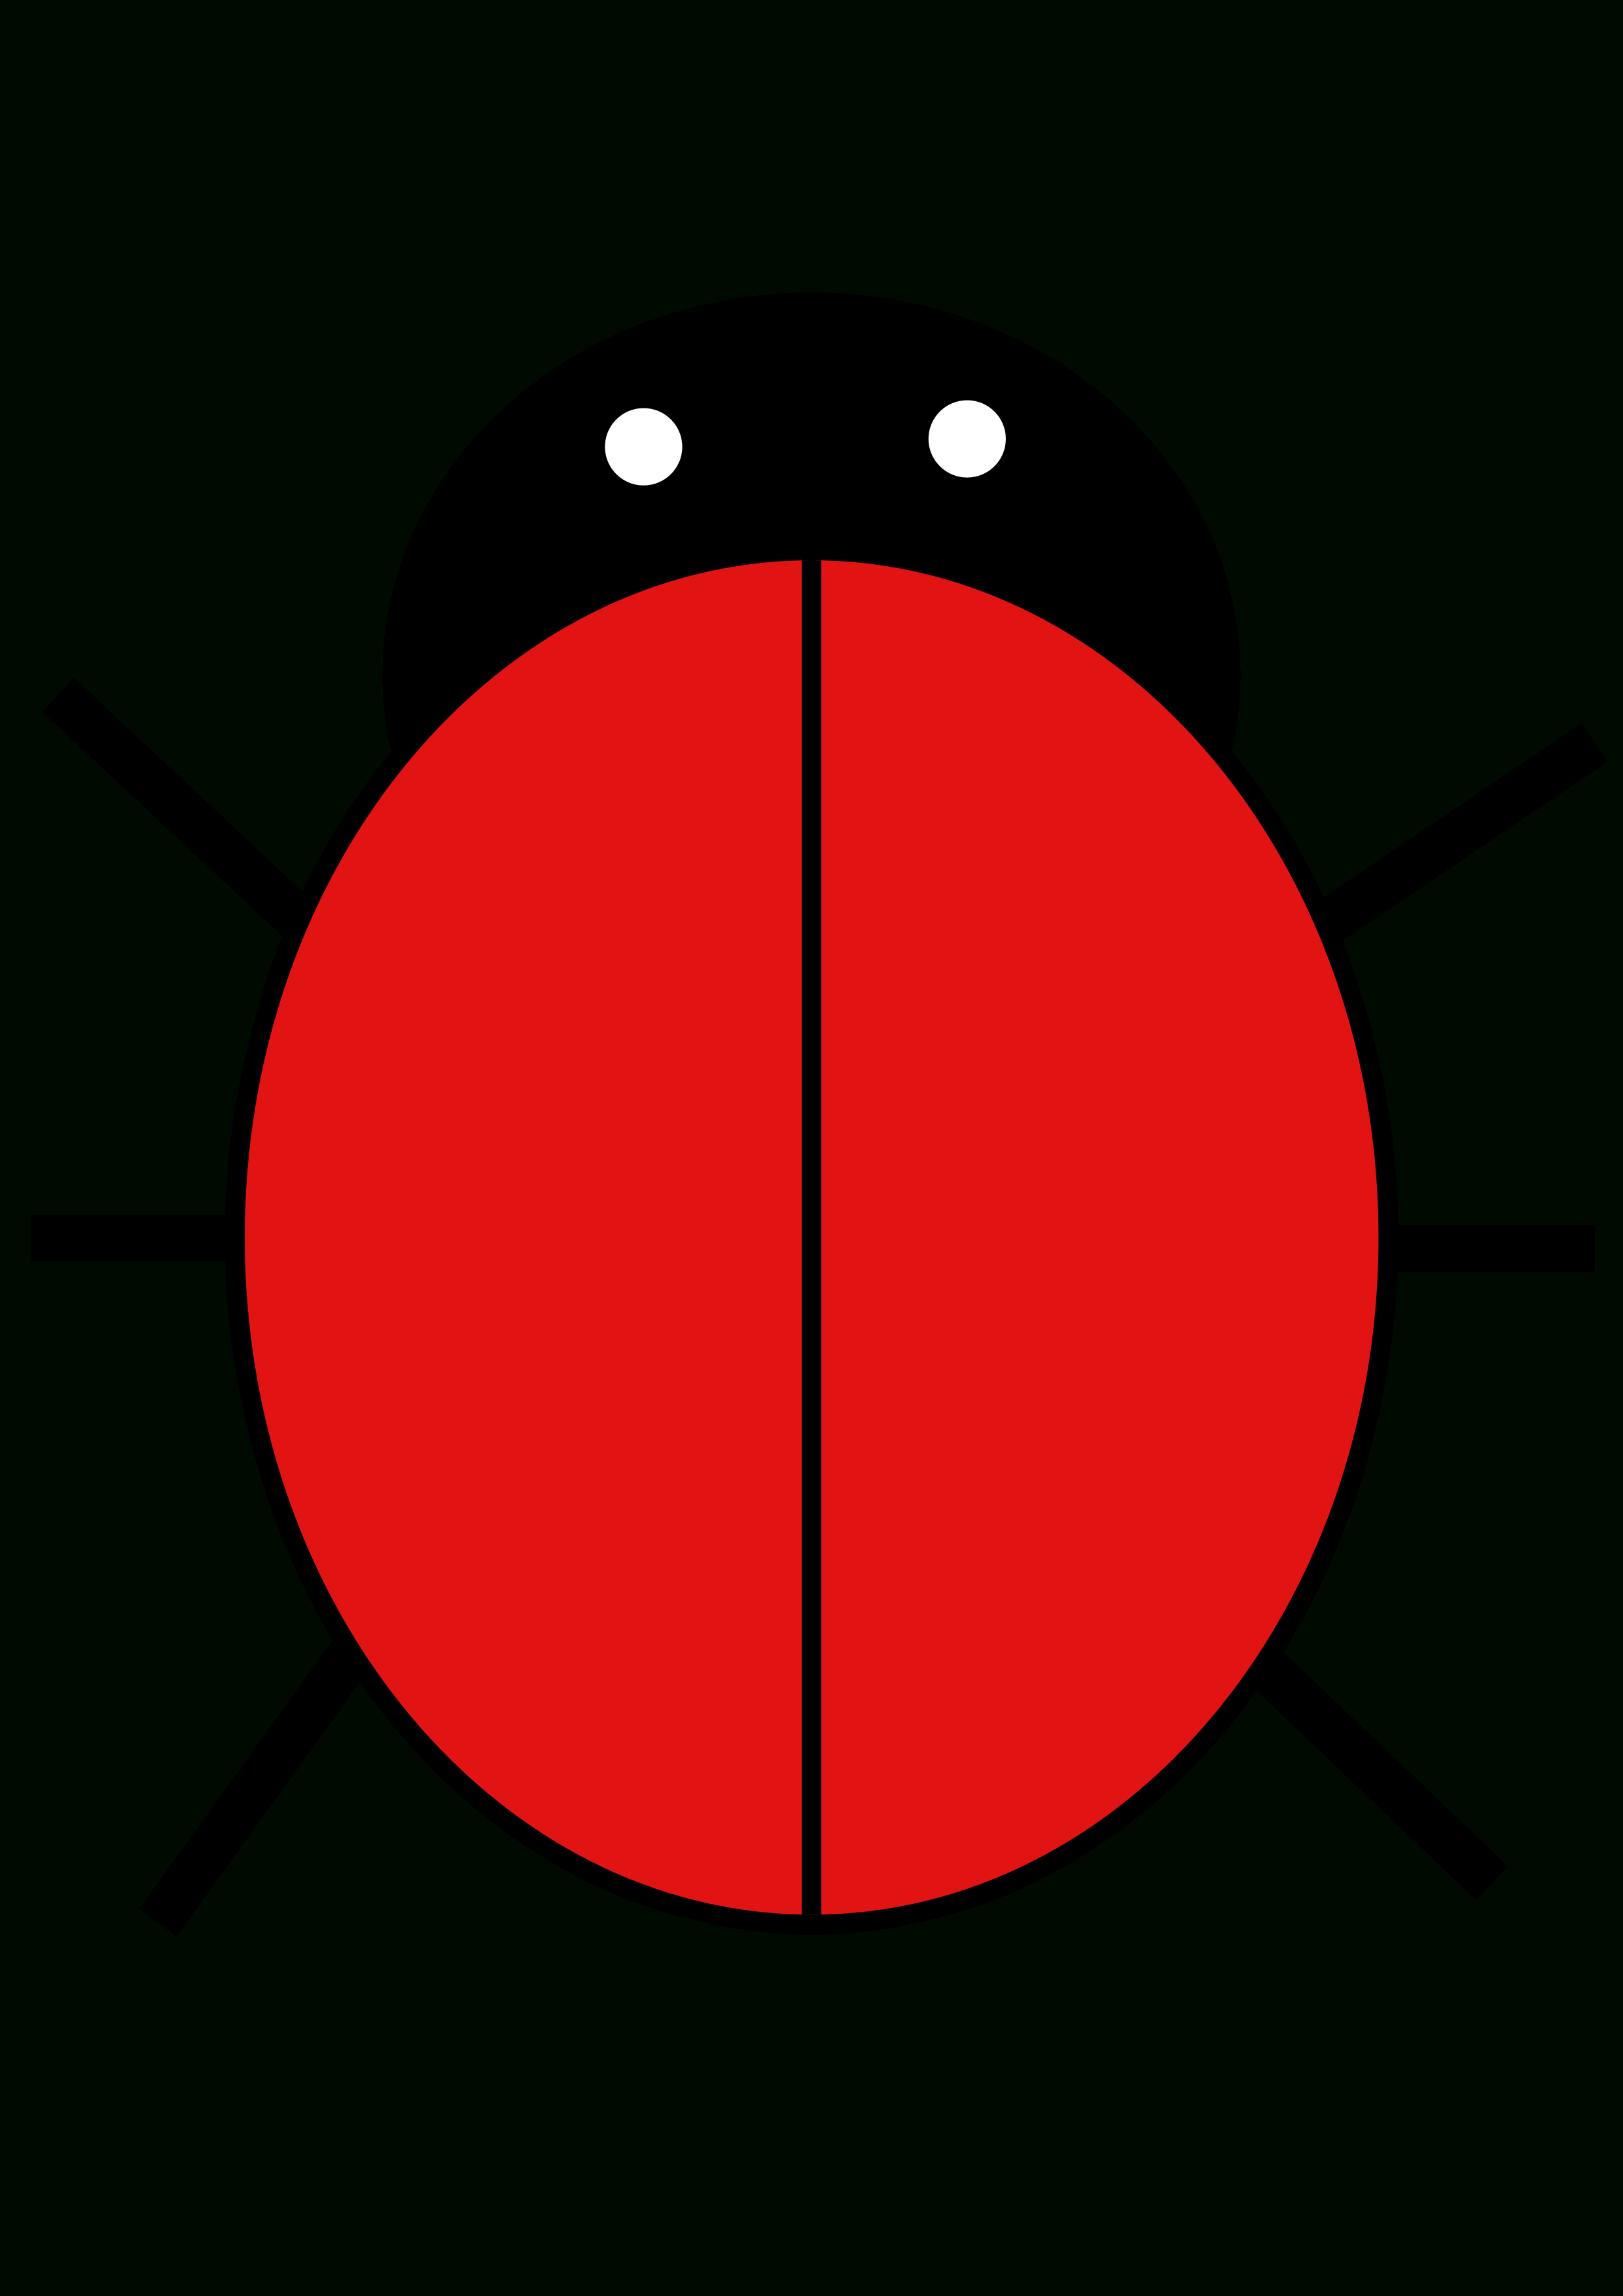 Ladybird  Free Images At Clker  Vector Clip Art Online Throughout Blank Ladybug Template